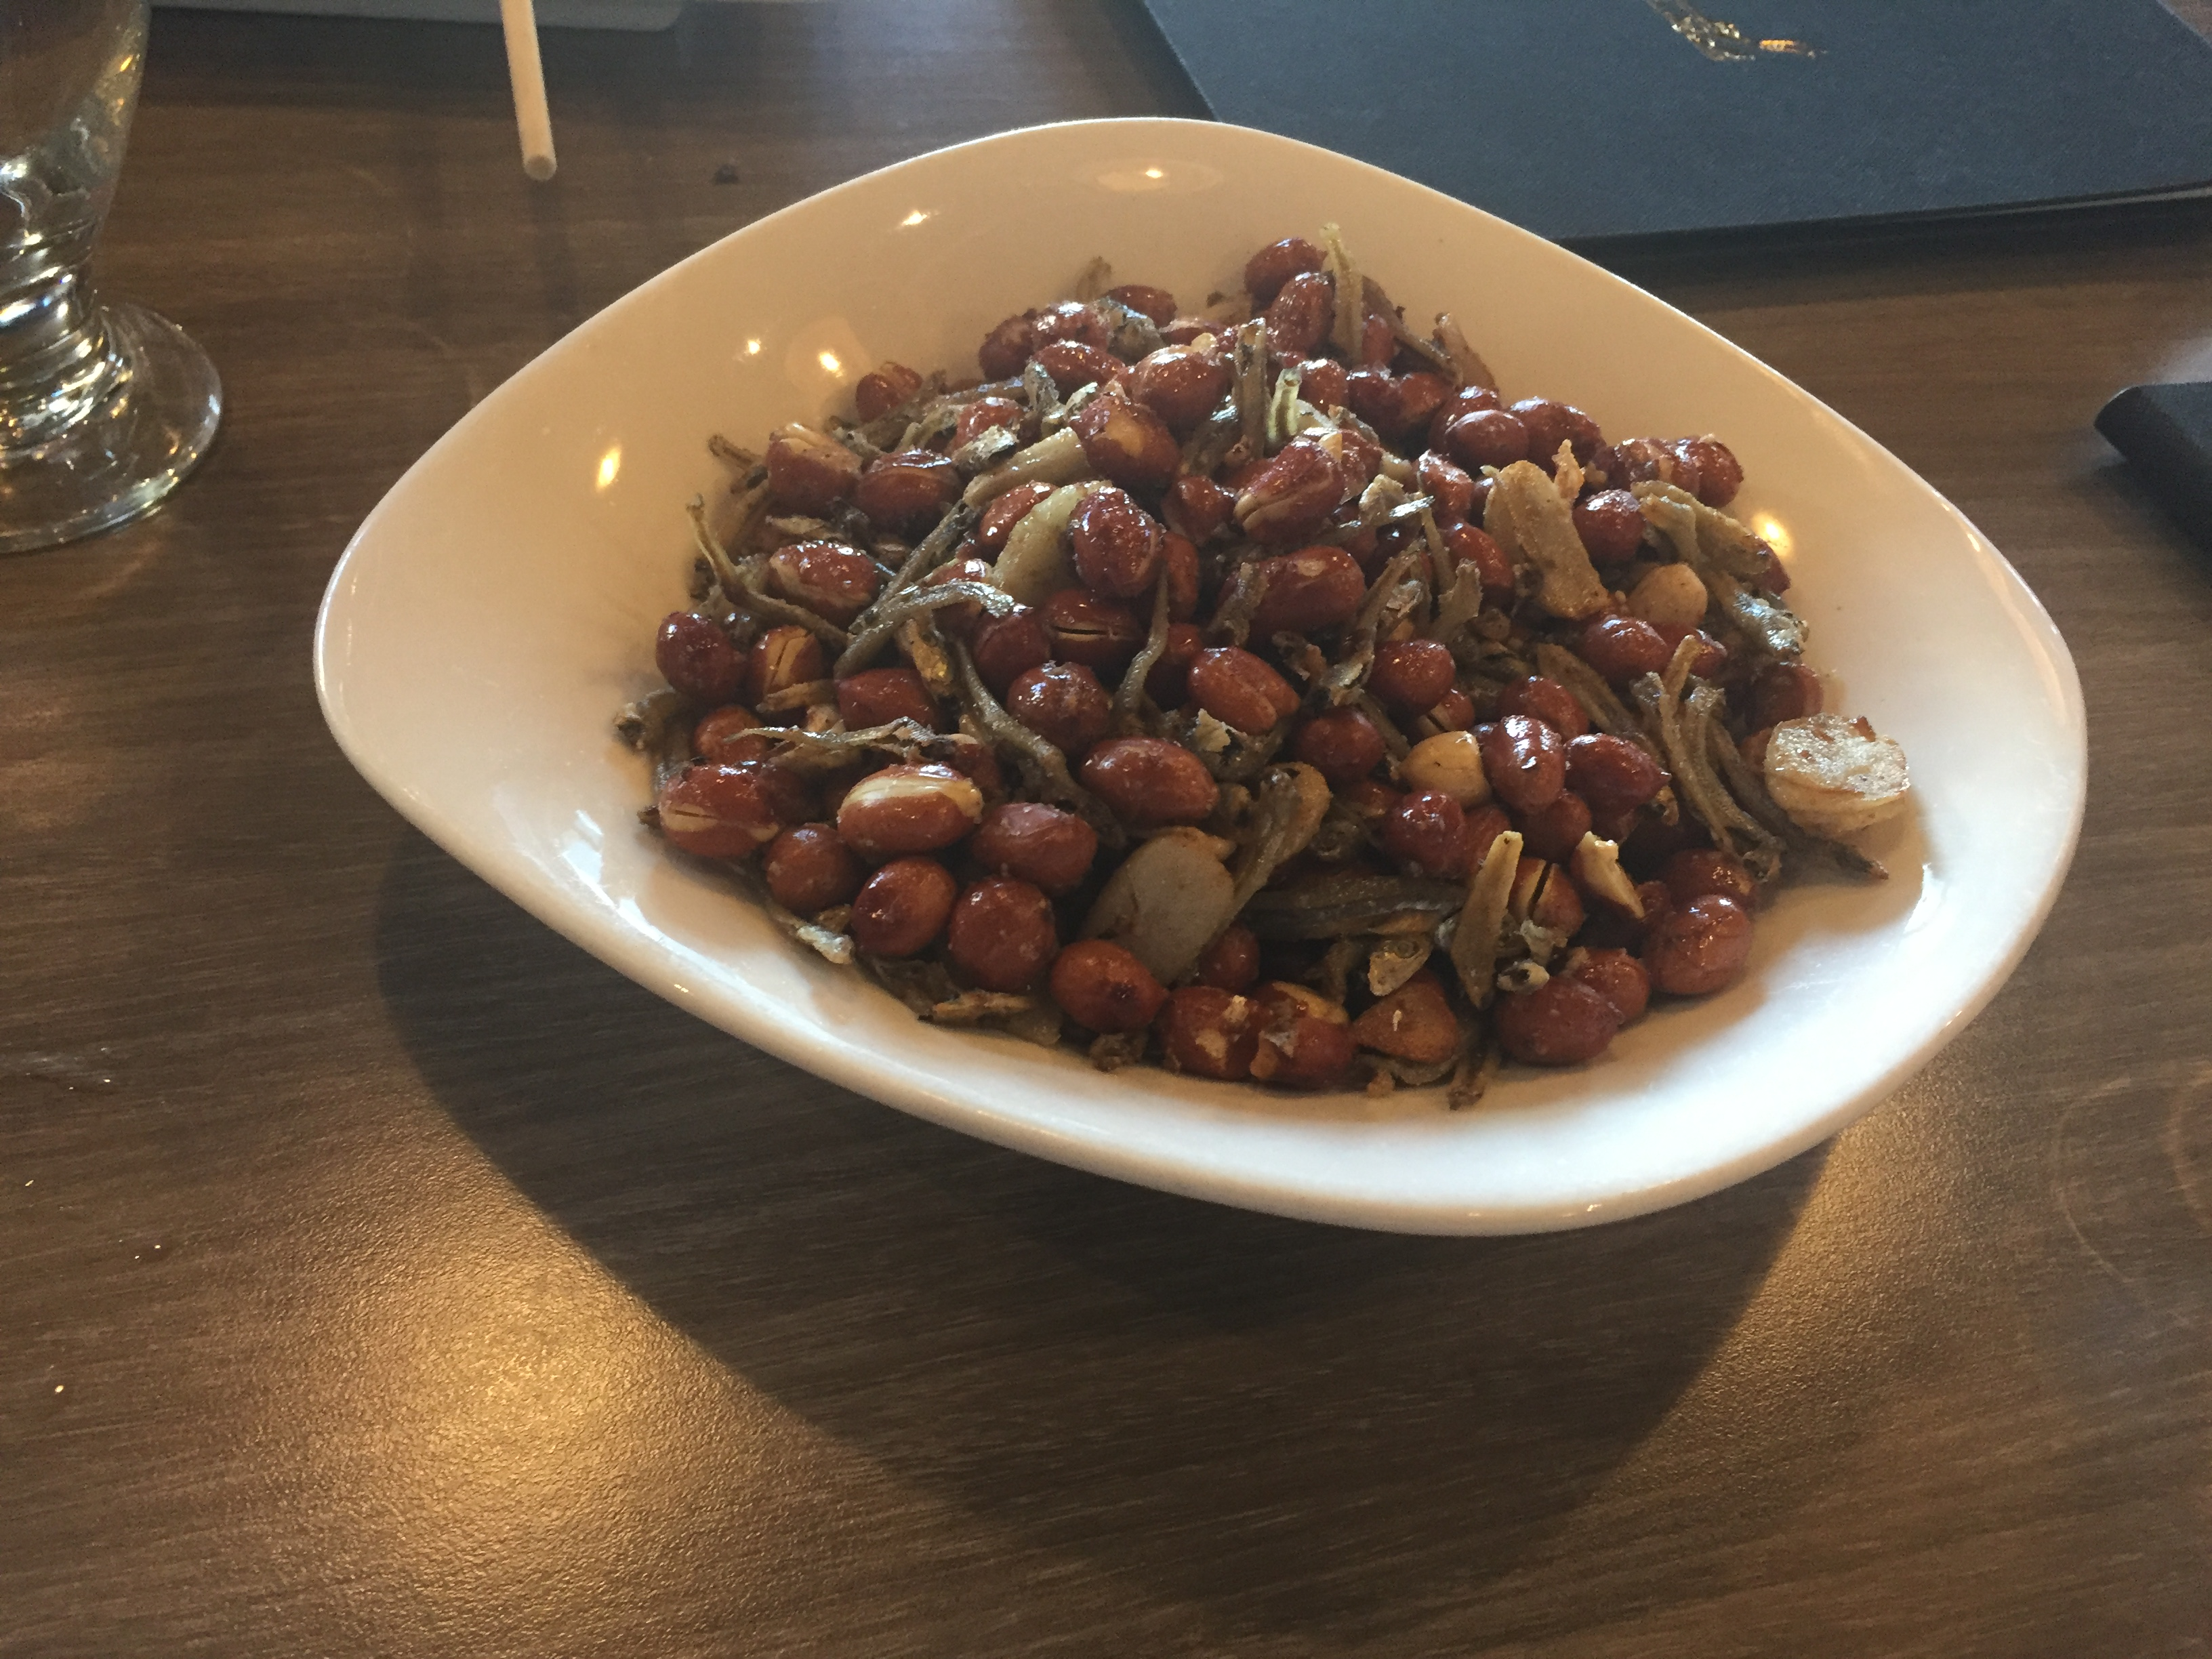 Fried peanuts and anchovies